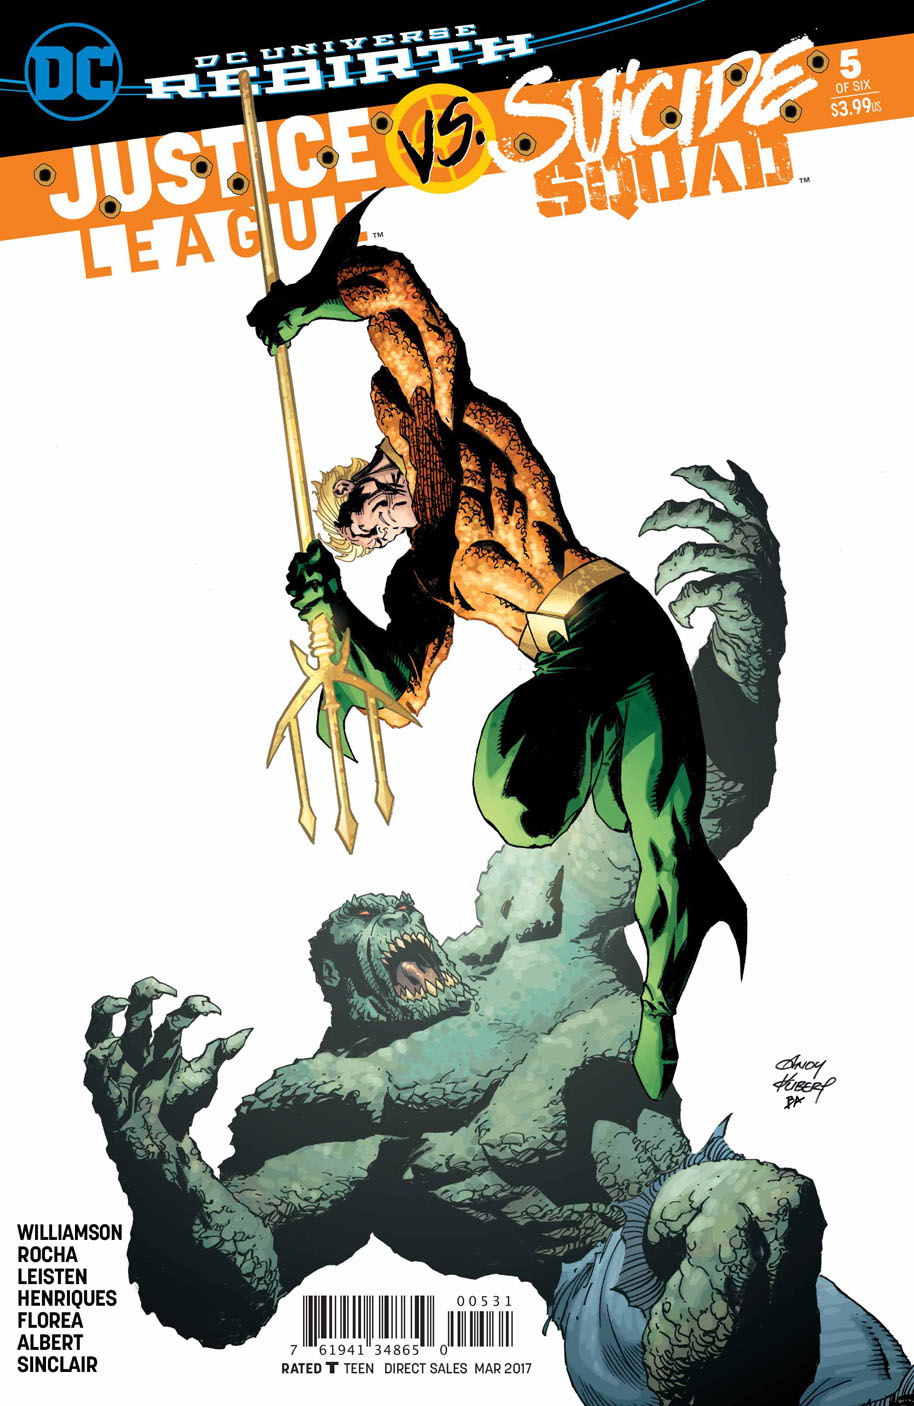 Justice League vs Suicide Squad 5 Andy Kubert cover